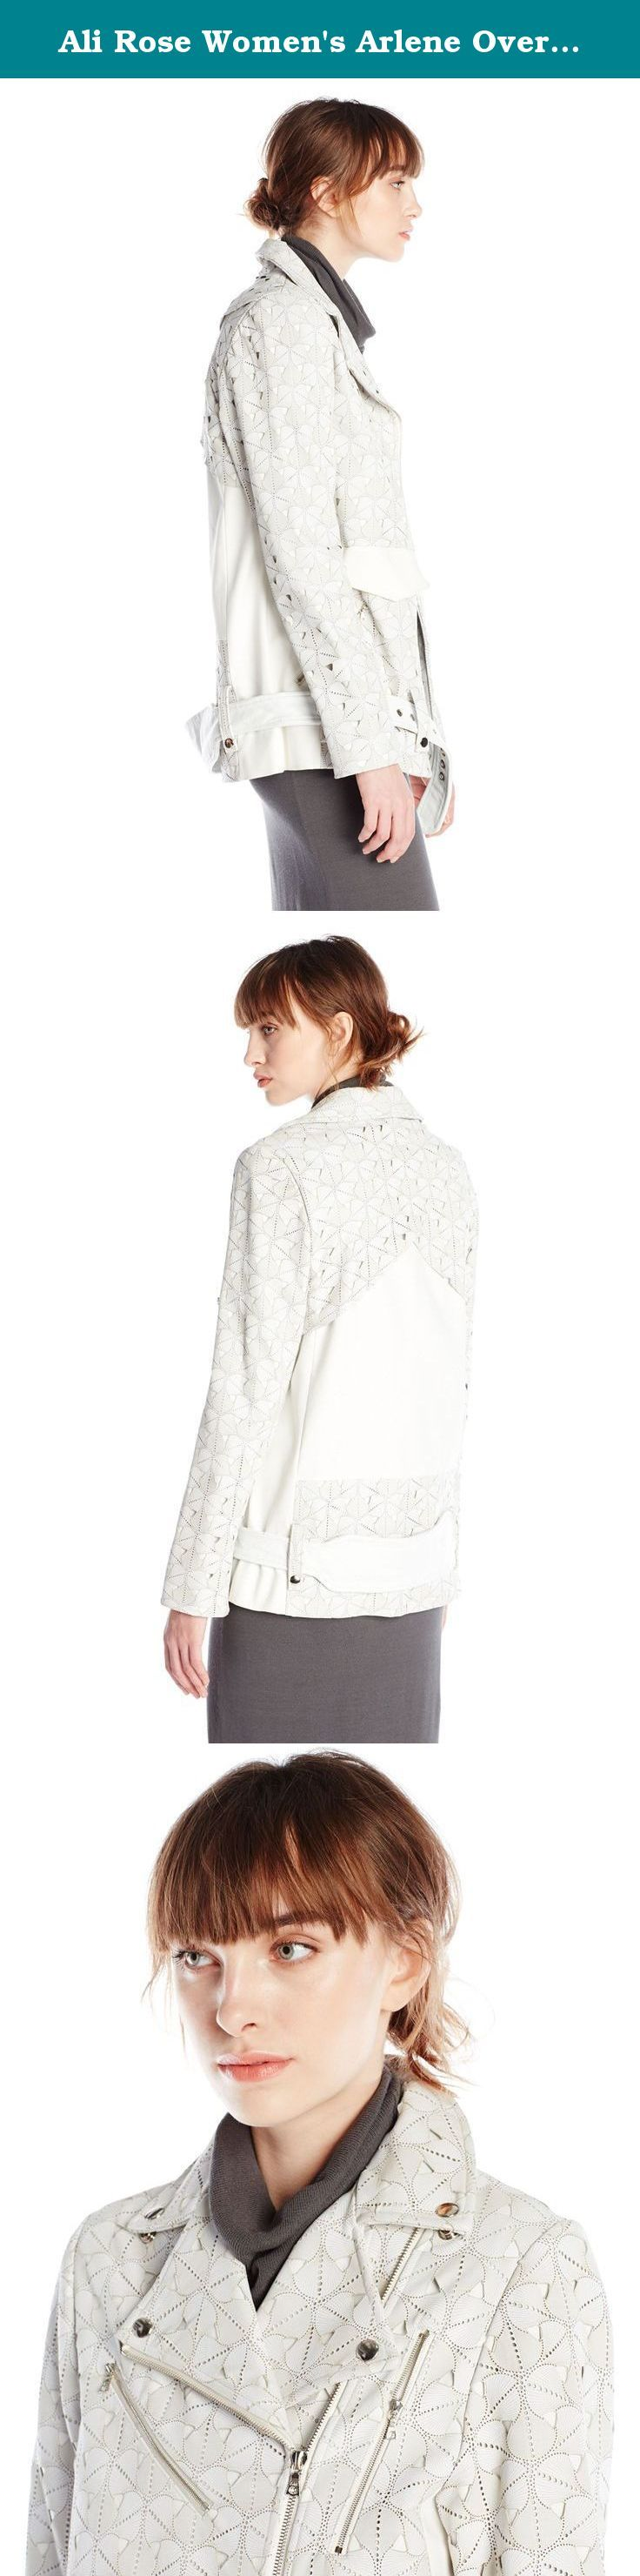 Ali Rose Women's Arlene Oversize Laser Cut Leather Moto Jacket. Merging technology of laser cutting with the delicate motif inspired by vintage wallpaper and sterile hardware into the ideal relaxed fit for the modern intellectual fashion forward woman. Inspired by the need to have a jacket to wear while getting an I.V. or blood drawn at the doctors, the jacket incorporates quirky details such as the hospital bracelet shaped belt, and sleeves that unzip all the way to expose the arm. This…